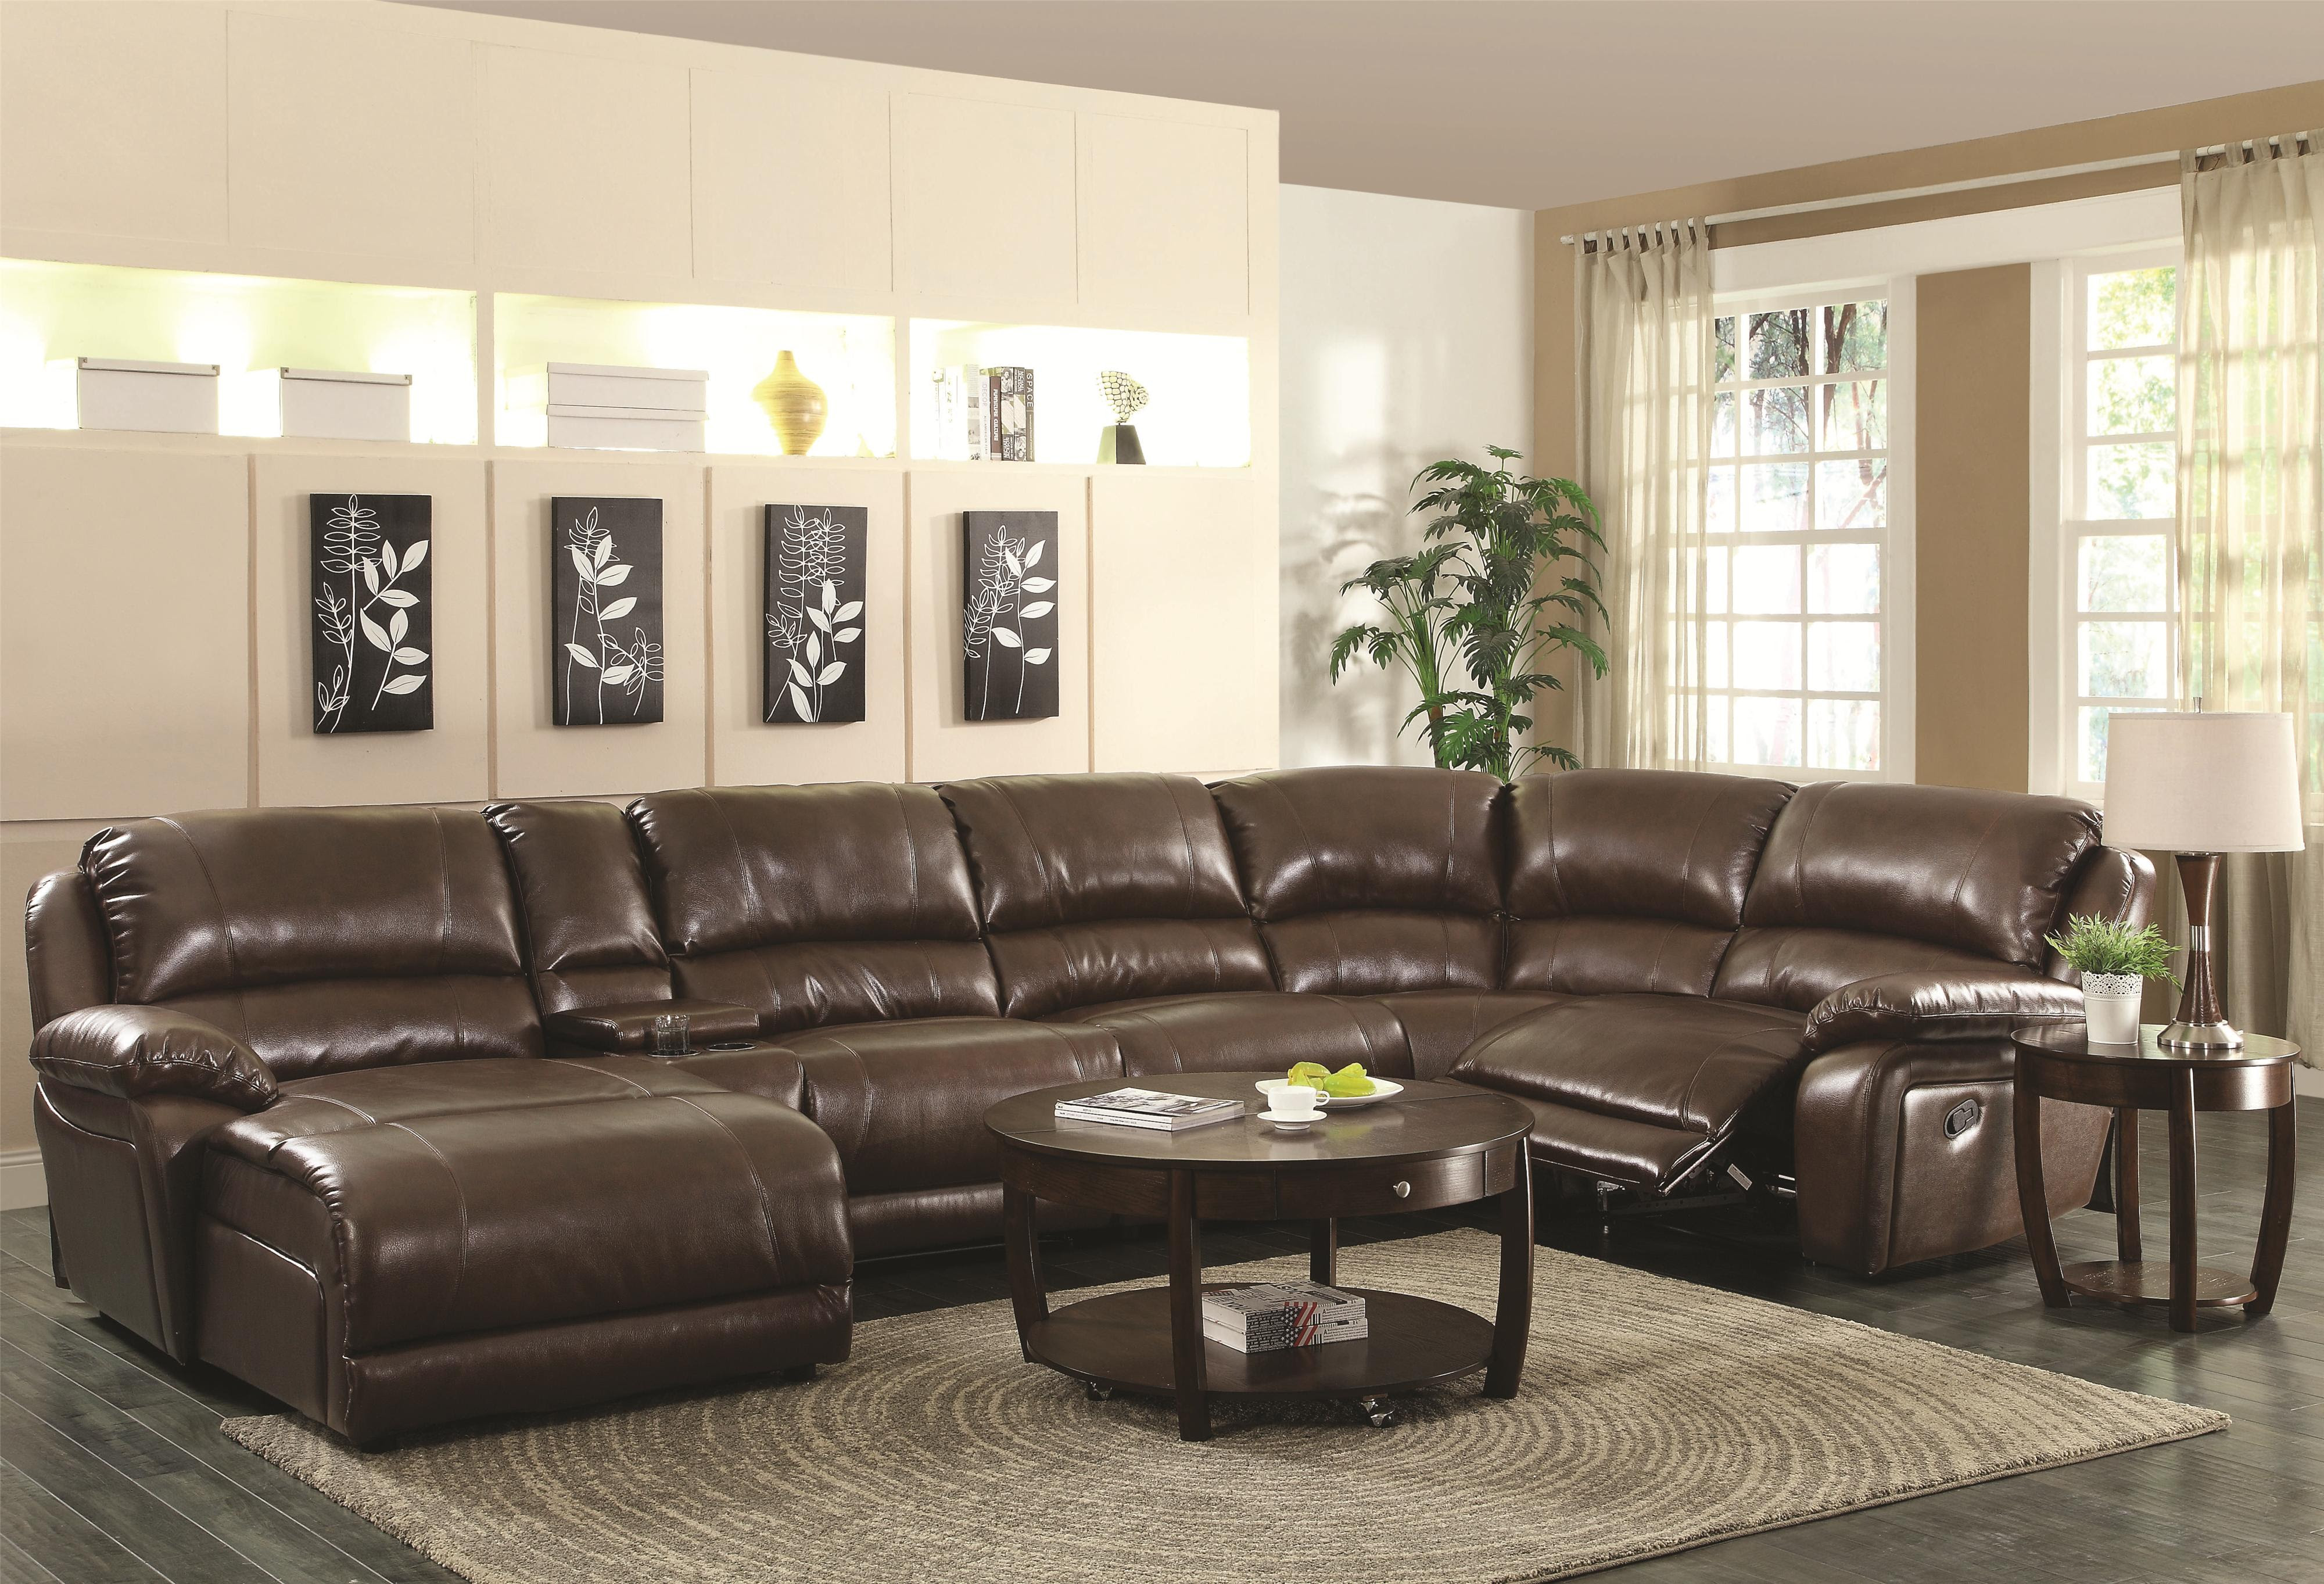 Best Sectional Sofas with Recliners and Chaise - HomesFeed